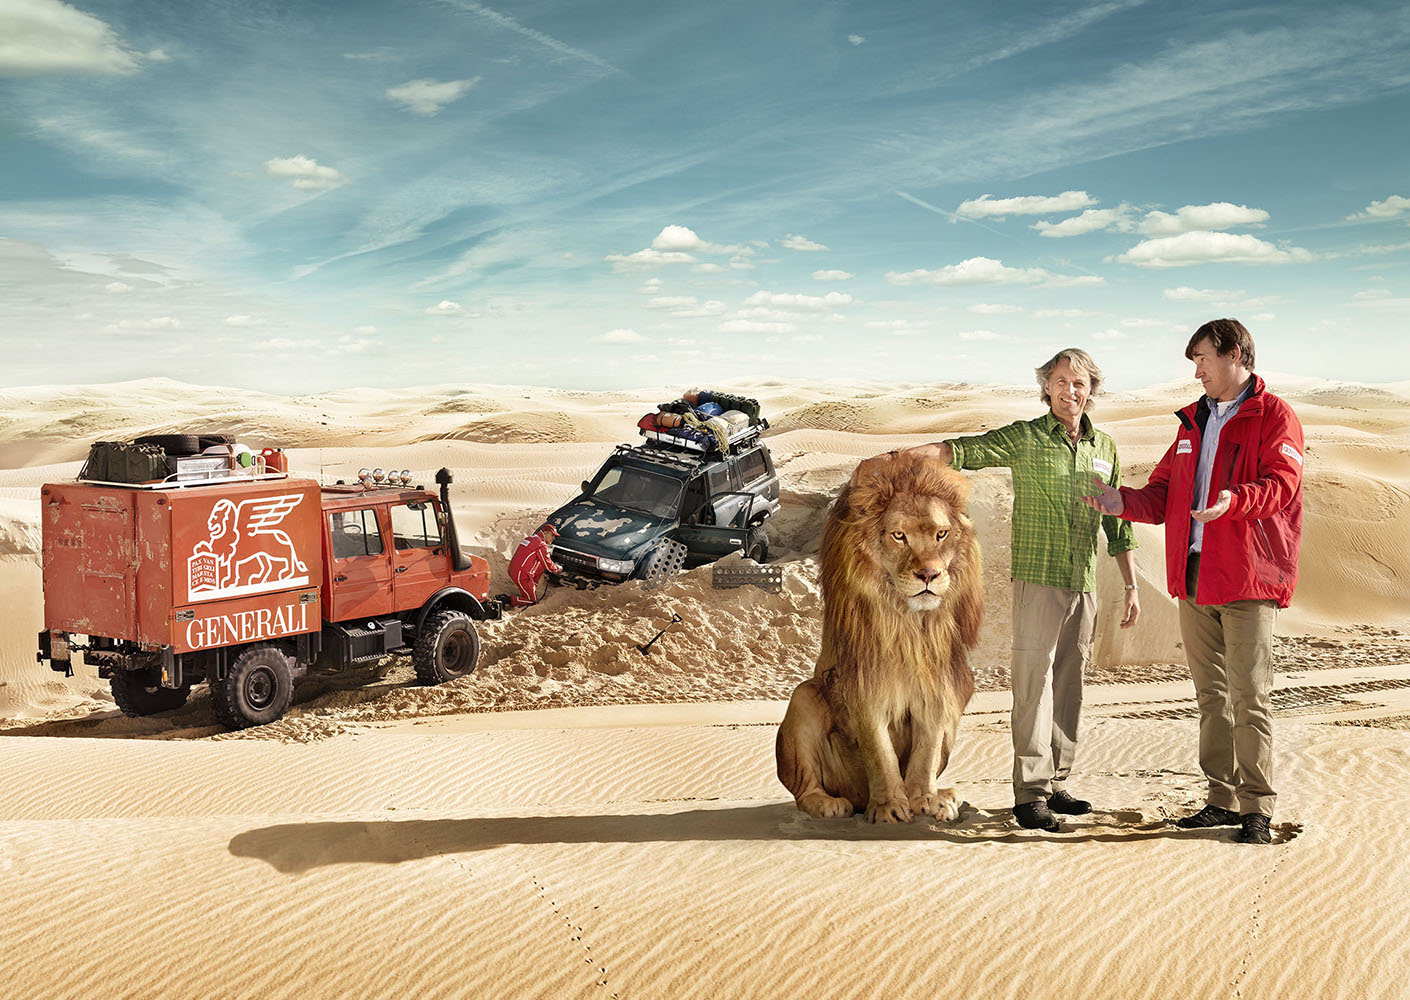 © Gonzalo Puertas Advertising Photographer. Generali: Ogilvy